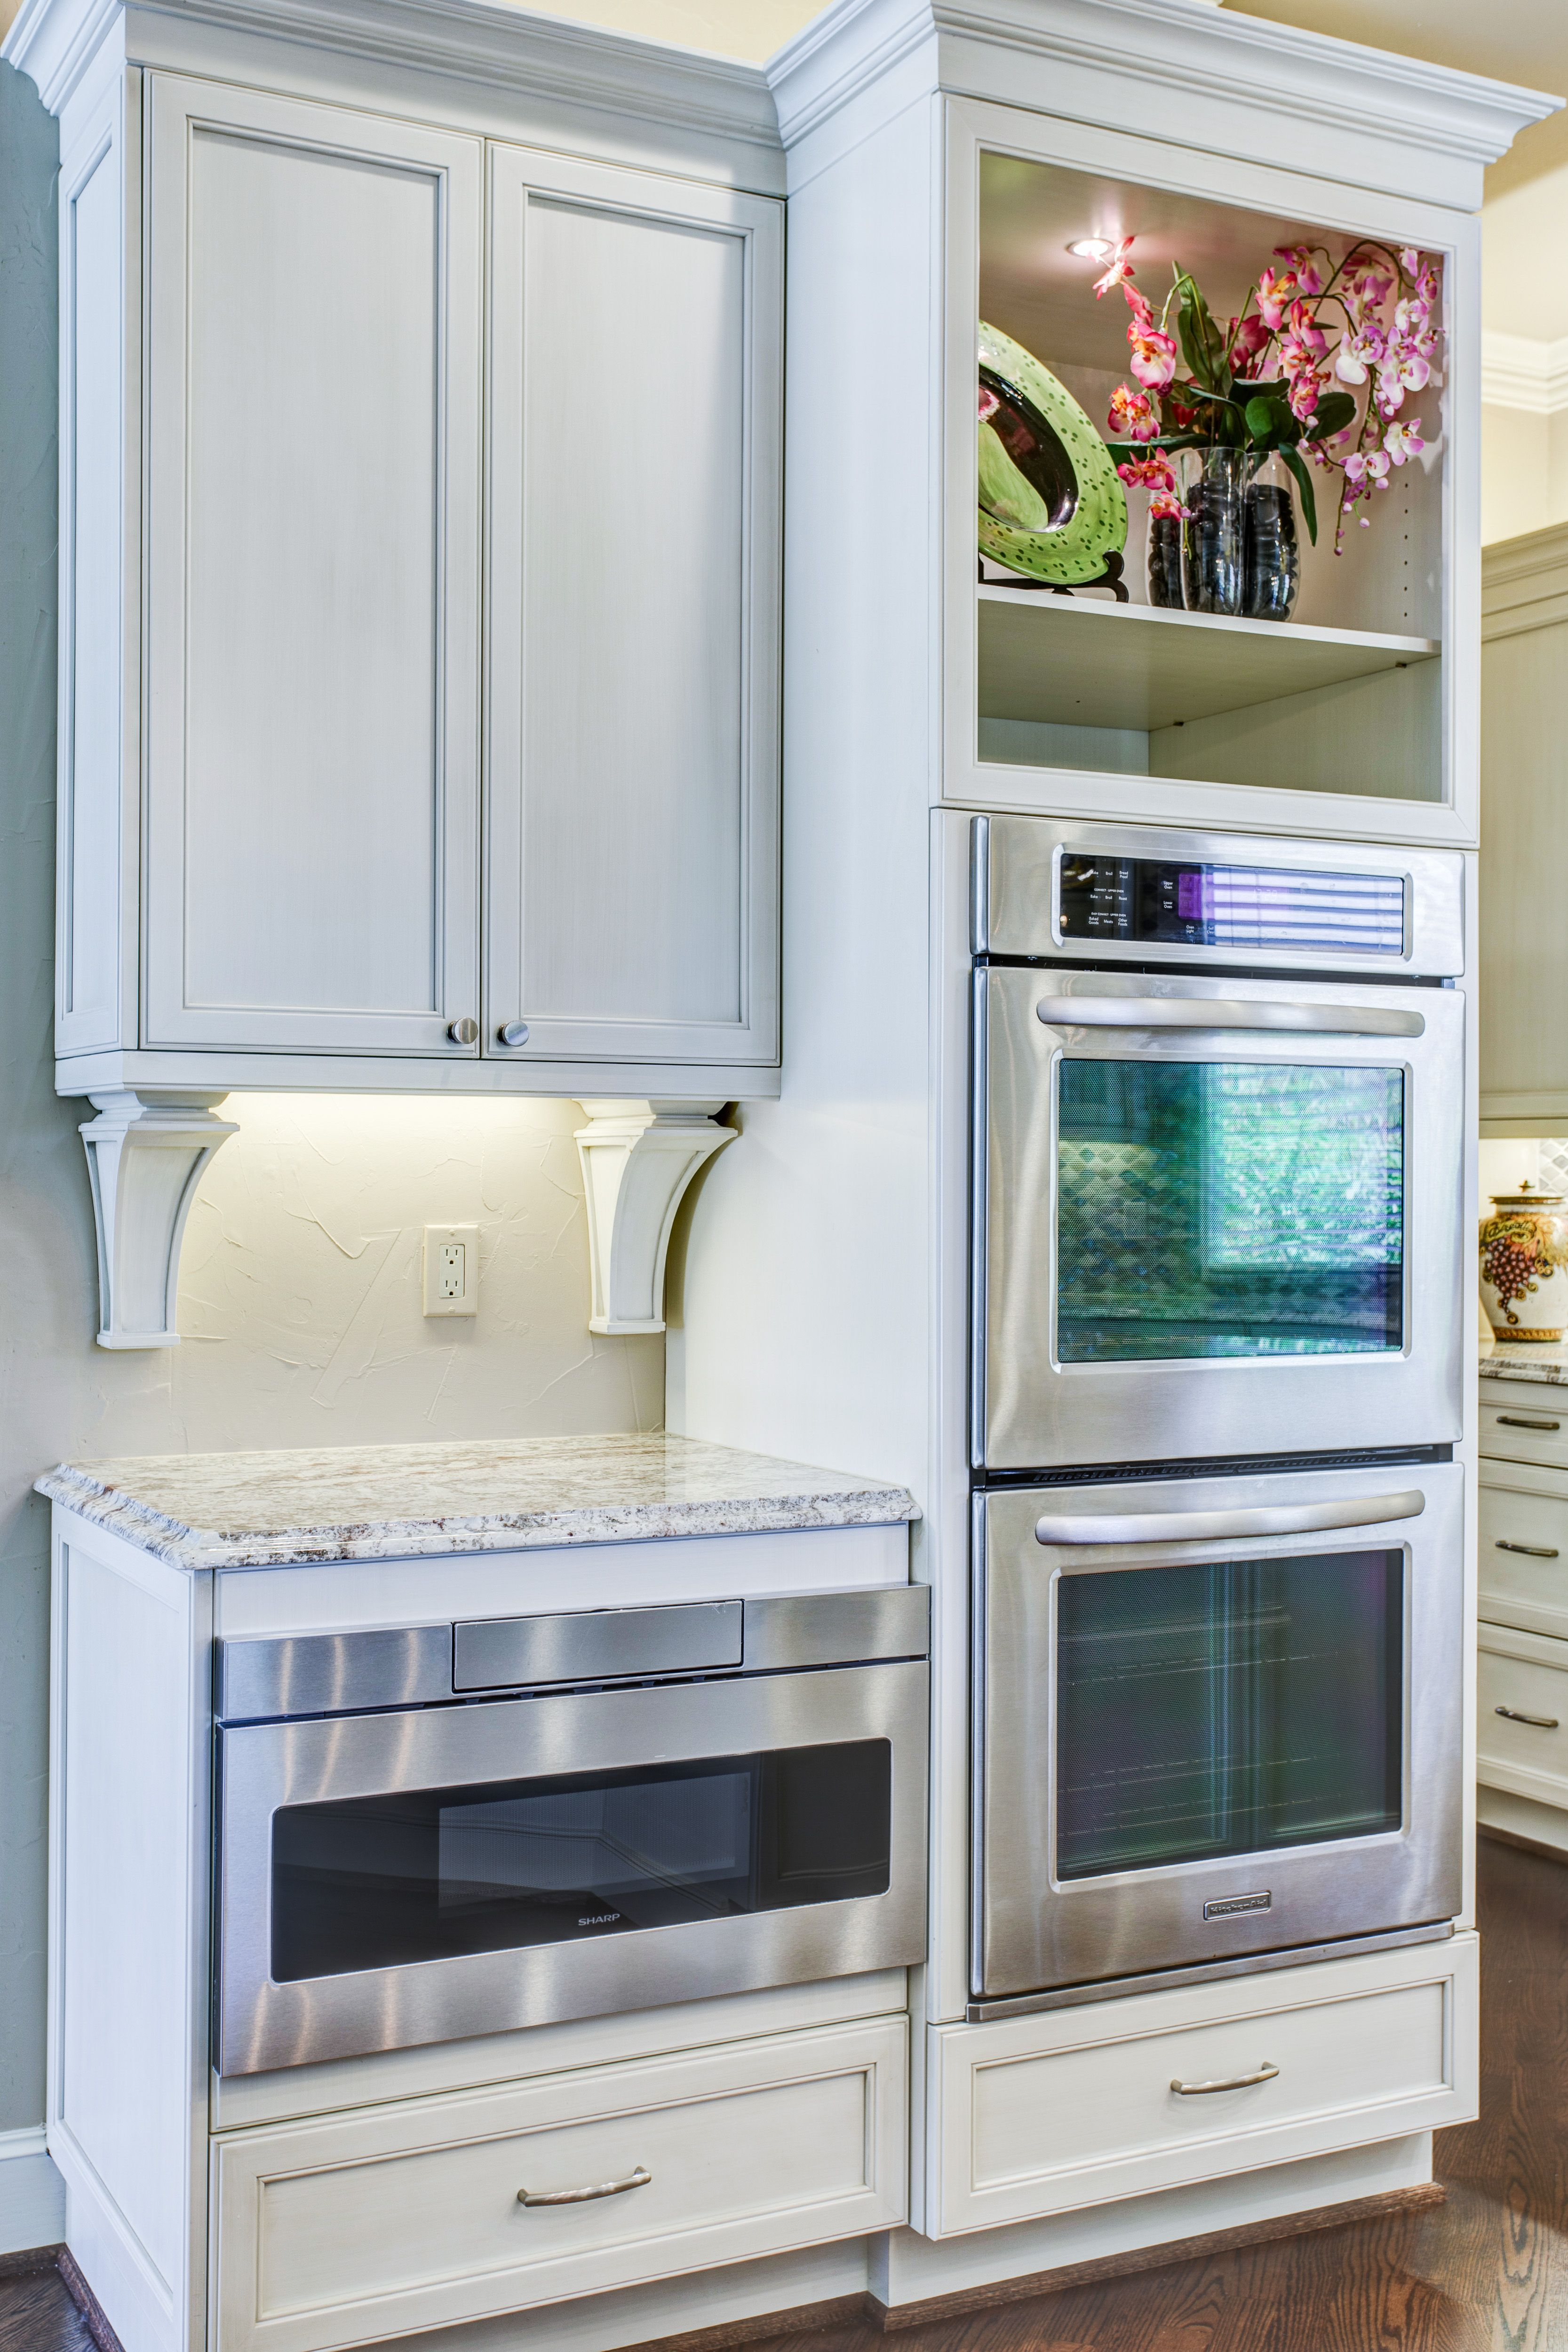 Sharp Microwave drawer with Double wall ovens | Plano - Glendower ...